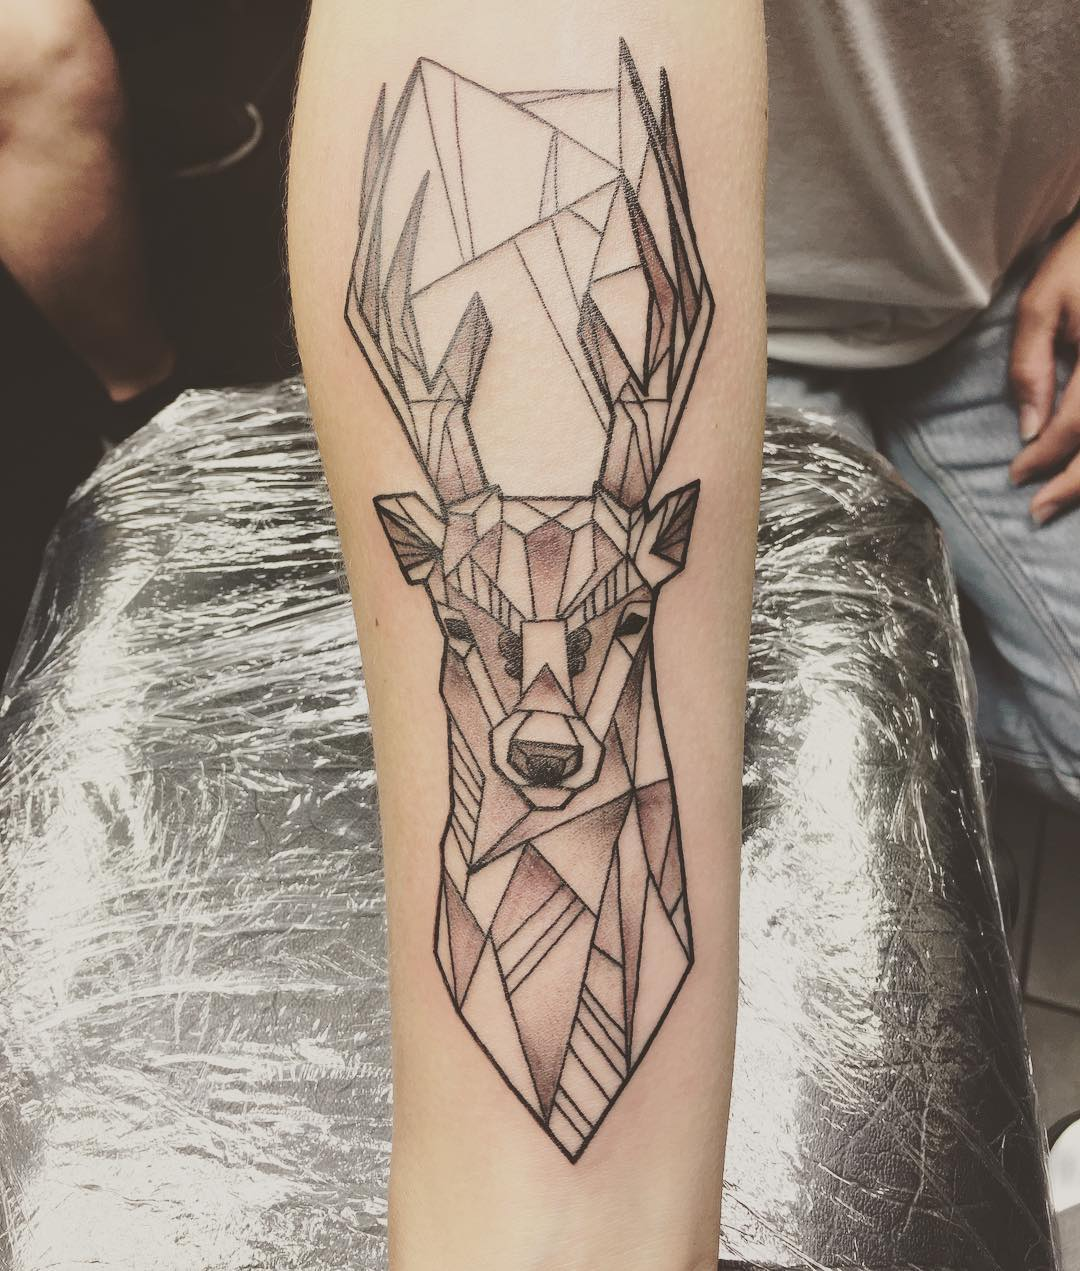 100 Delightful Blackwork Tattoo Designs: 100 Cool Line Tattoo Designs To Ink With